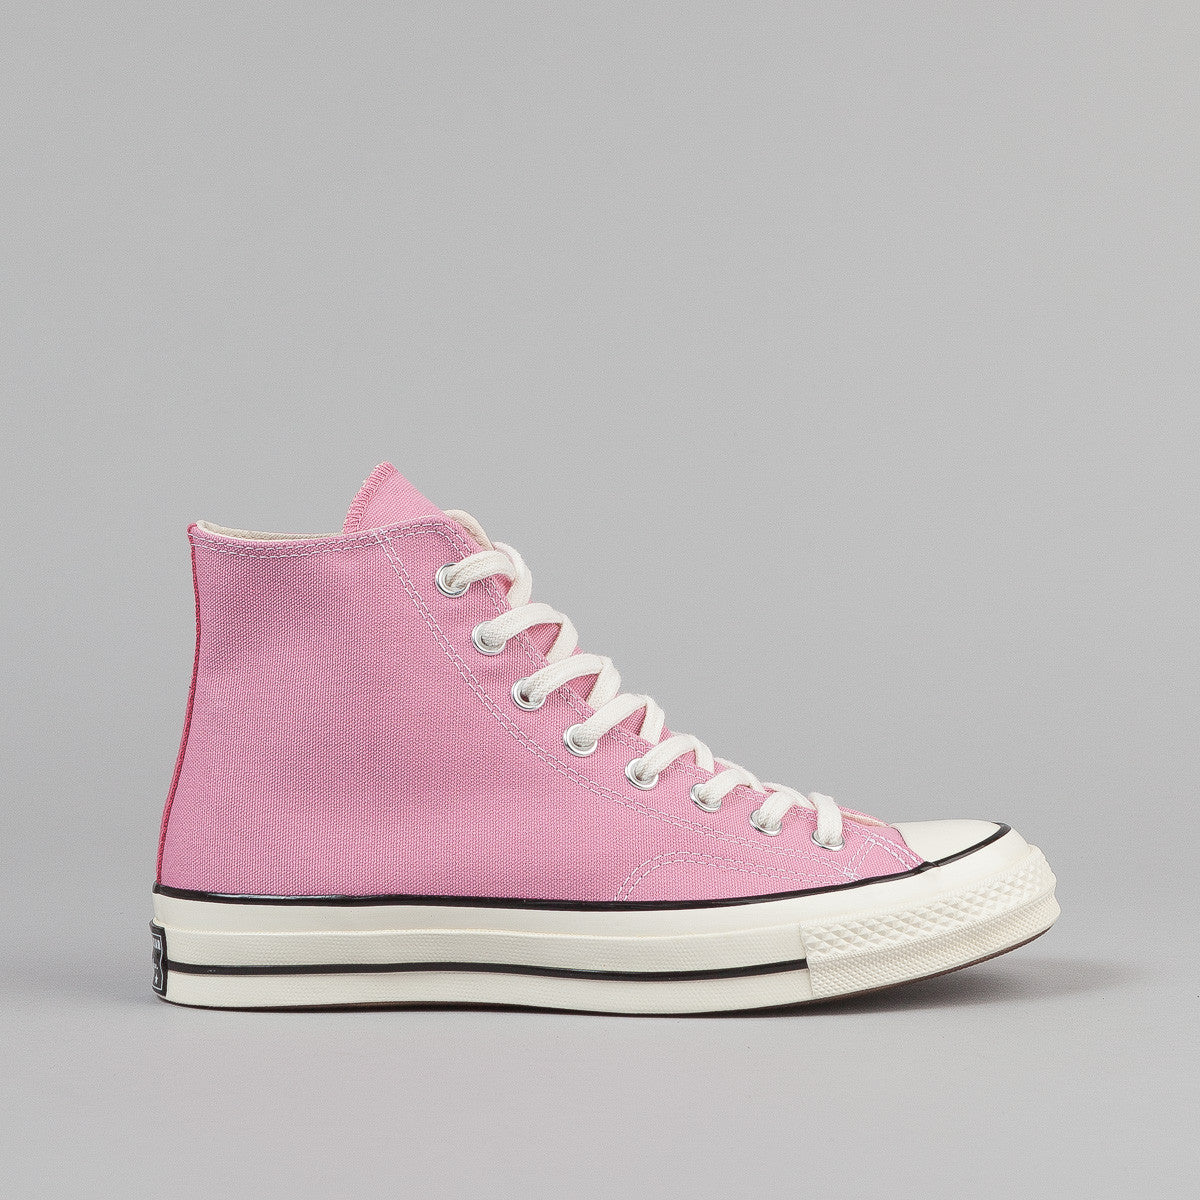 Converse CTAS 70 Hi Shoes - Chateau Rose / Black / Egret